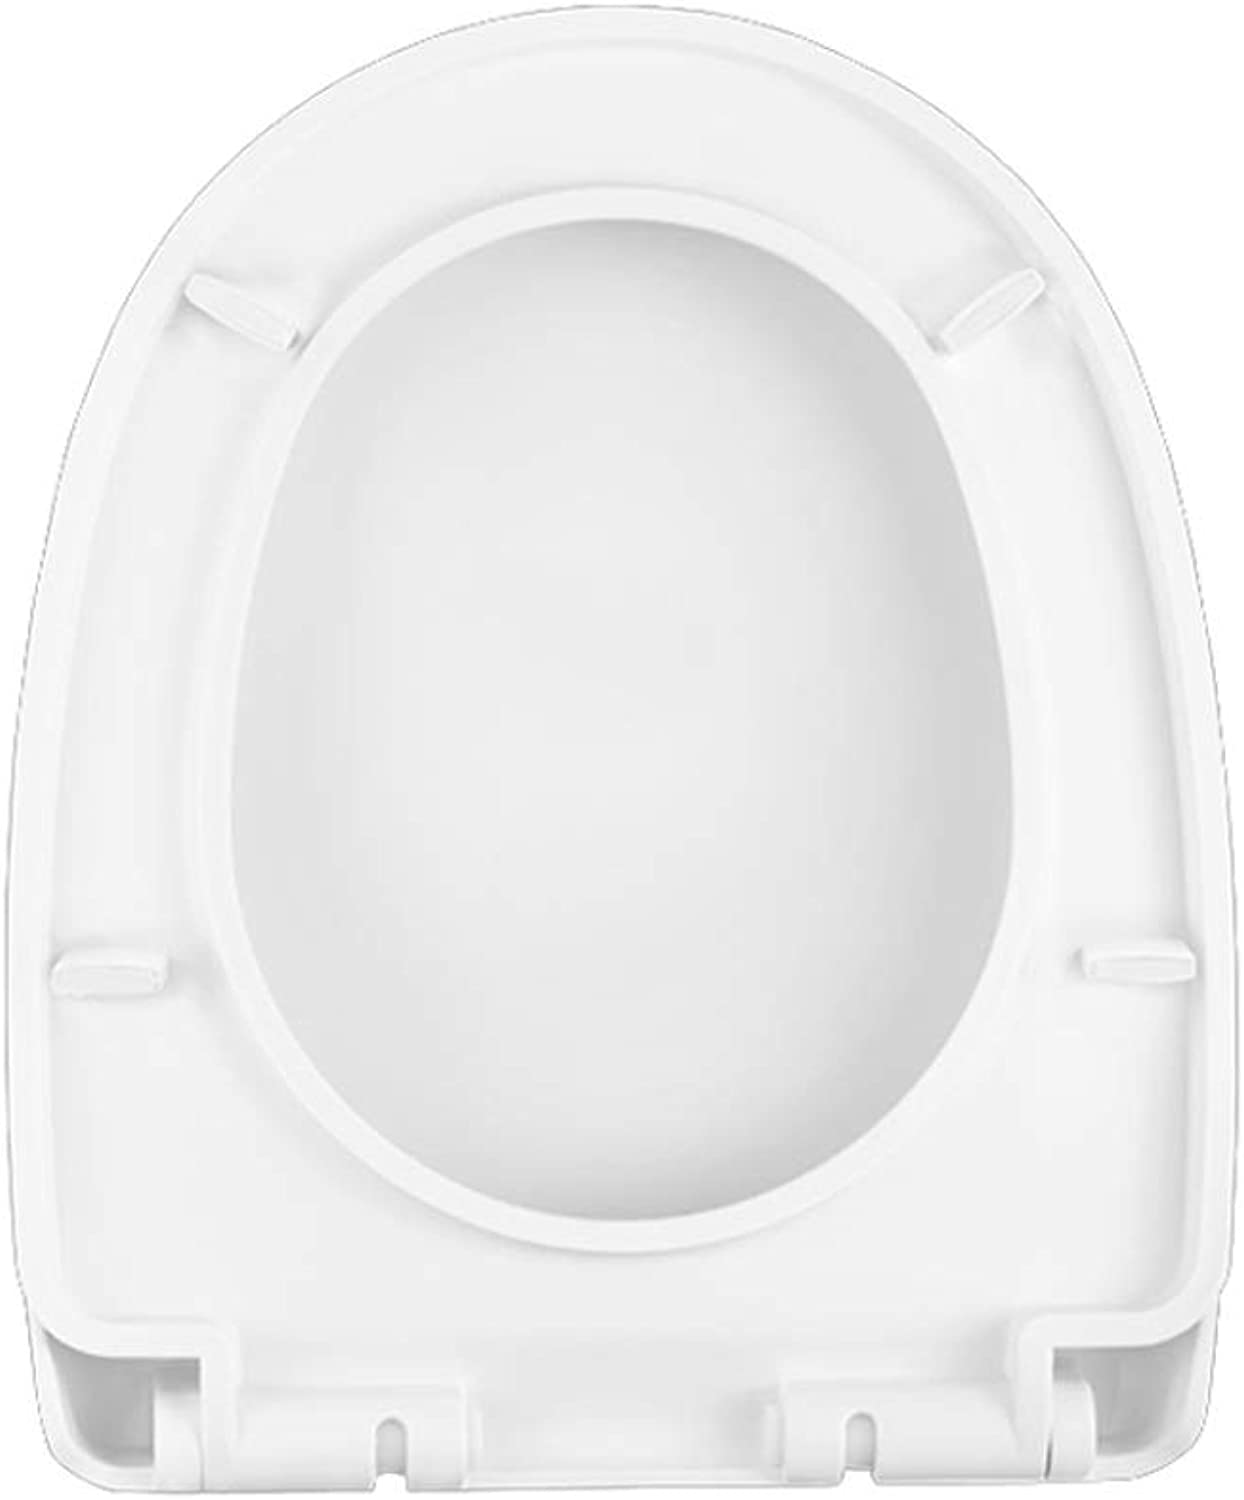 Yxsd Thickened Toilet Seats Cover Plate,V U-shaped Toilet Seat Heavy Duty Soft Close White - Easy Inssizetion (Size   U-shaped)